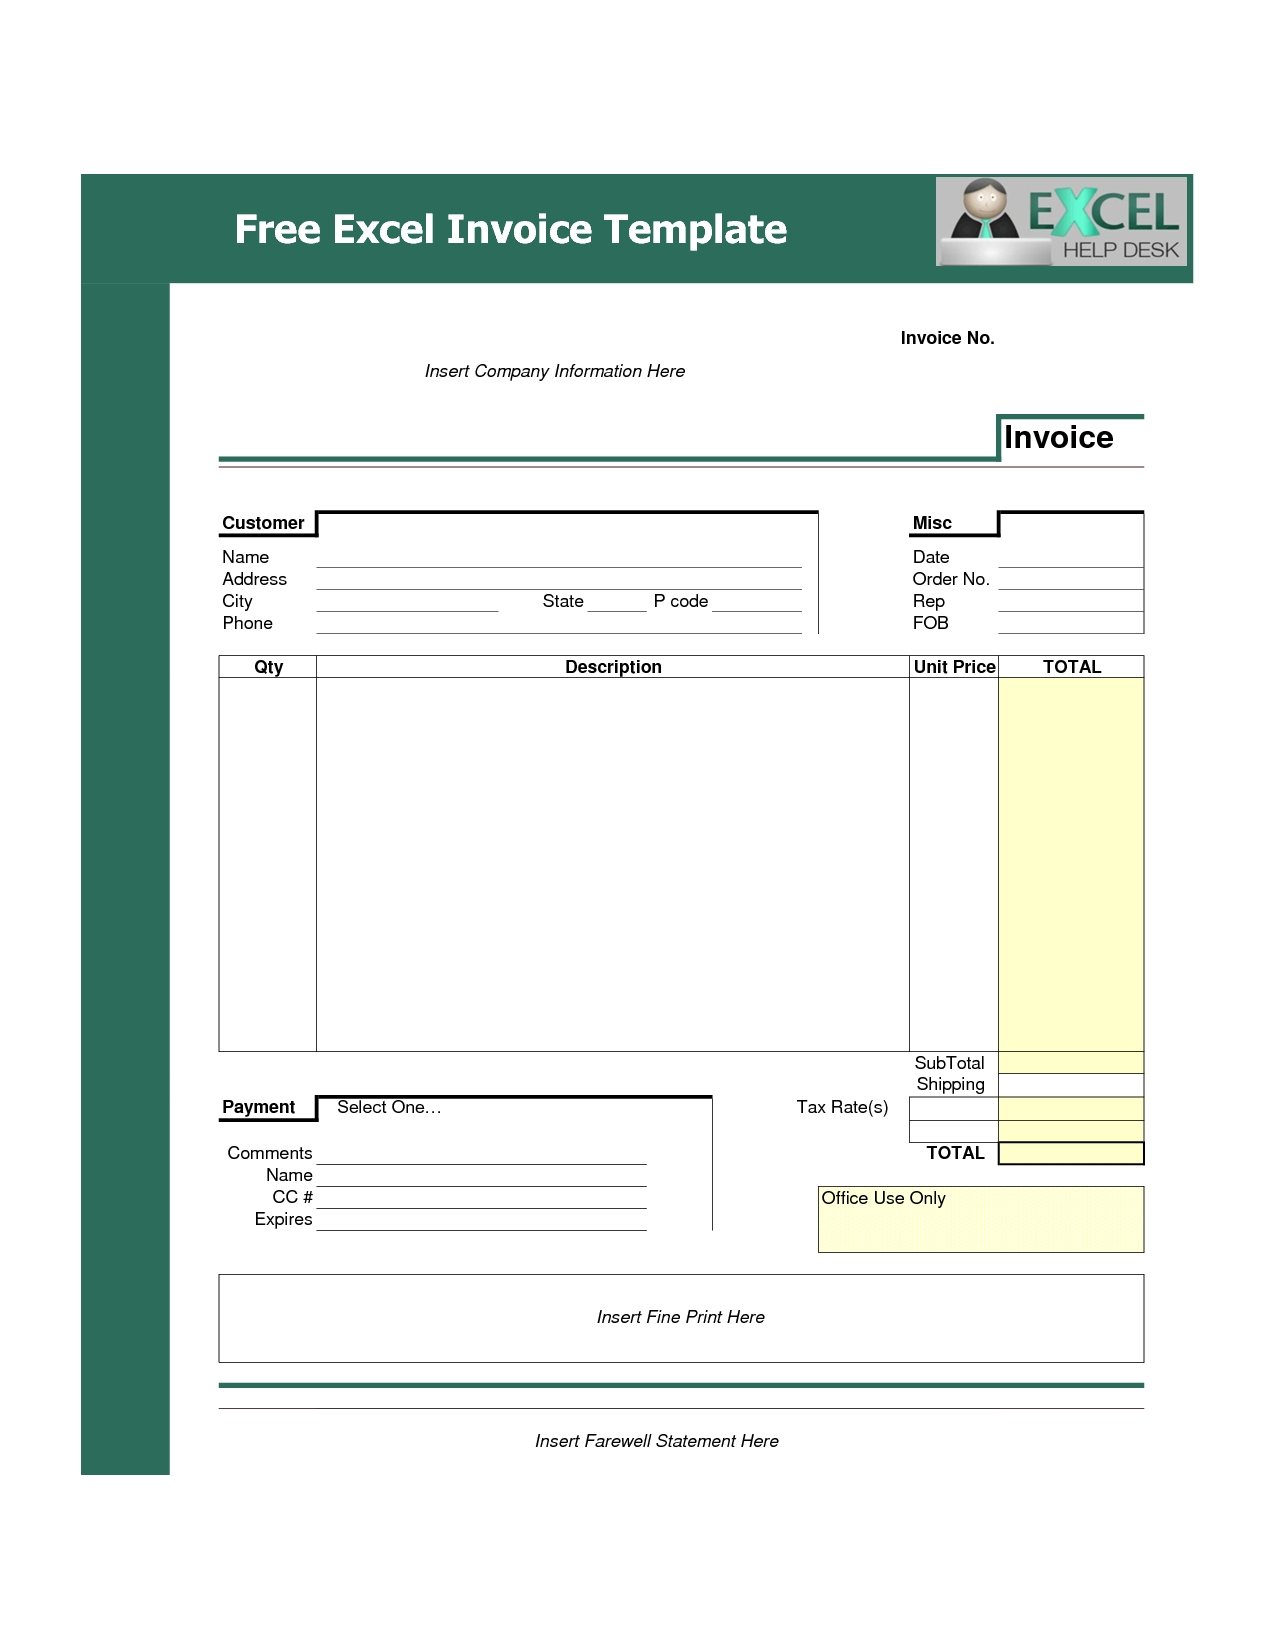 invoice excel template free download excel invoice template best template collection 1275 X 1650